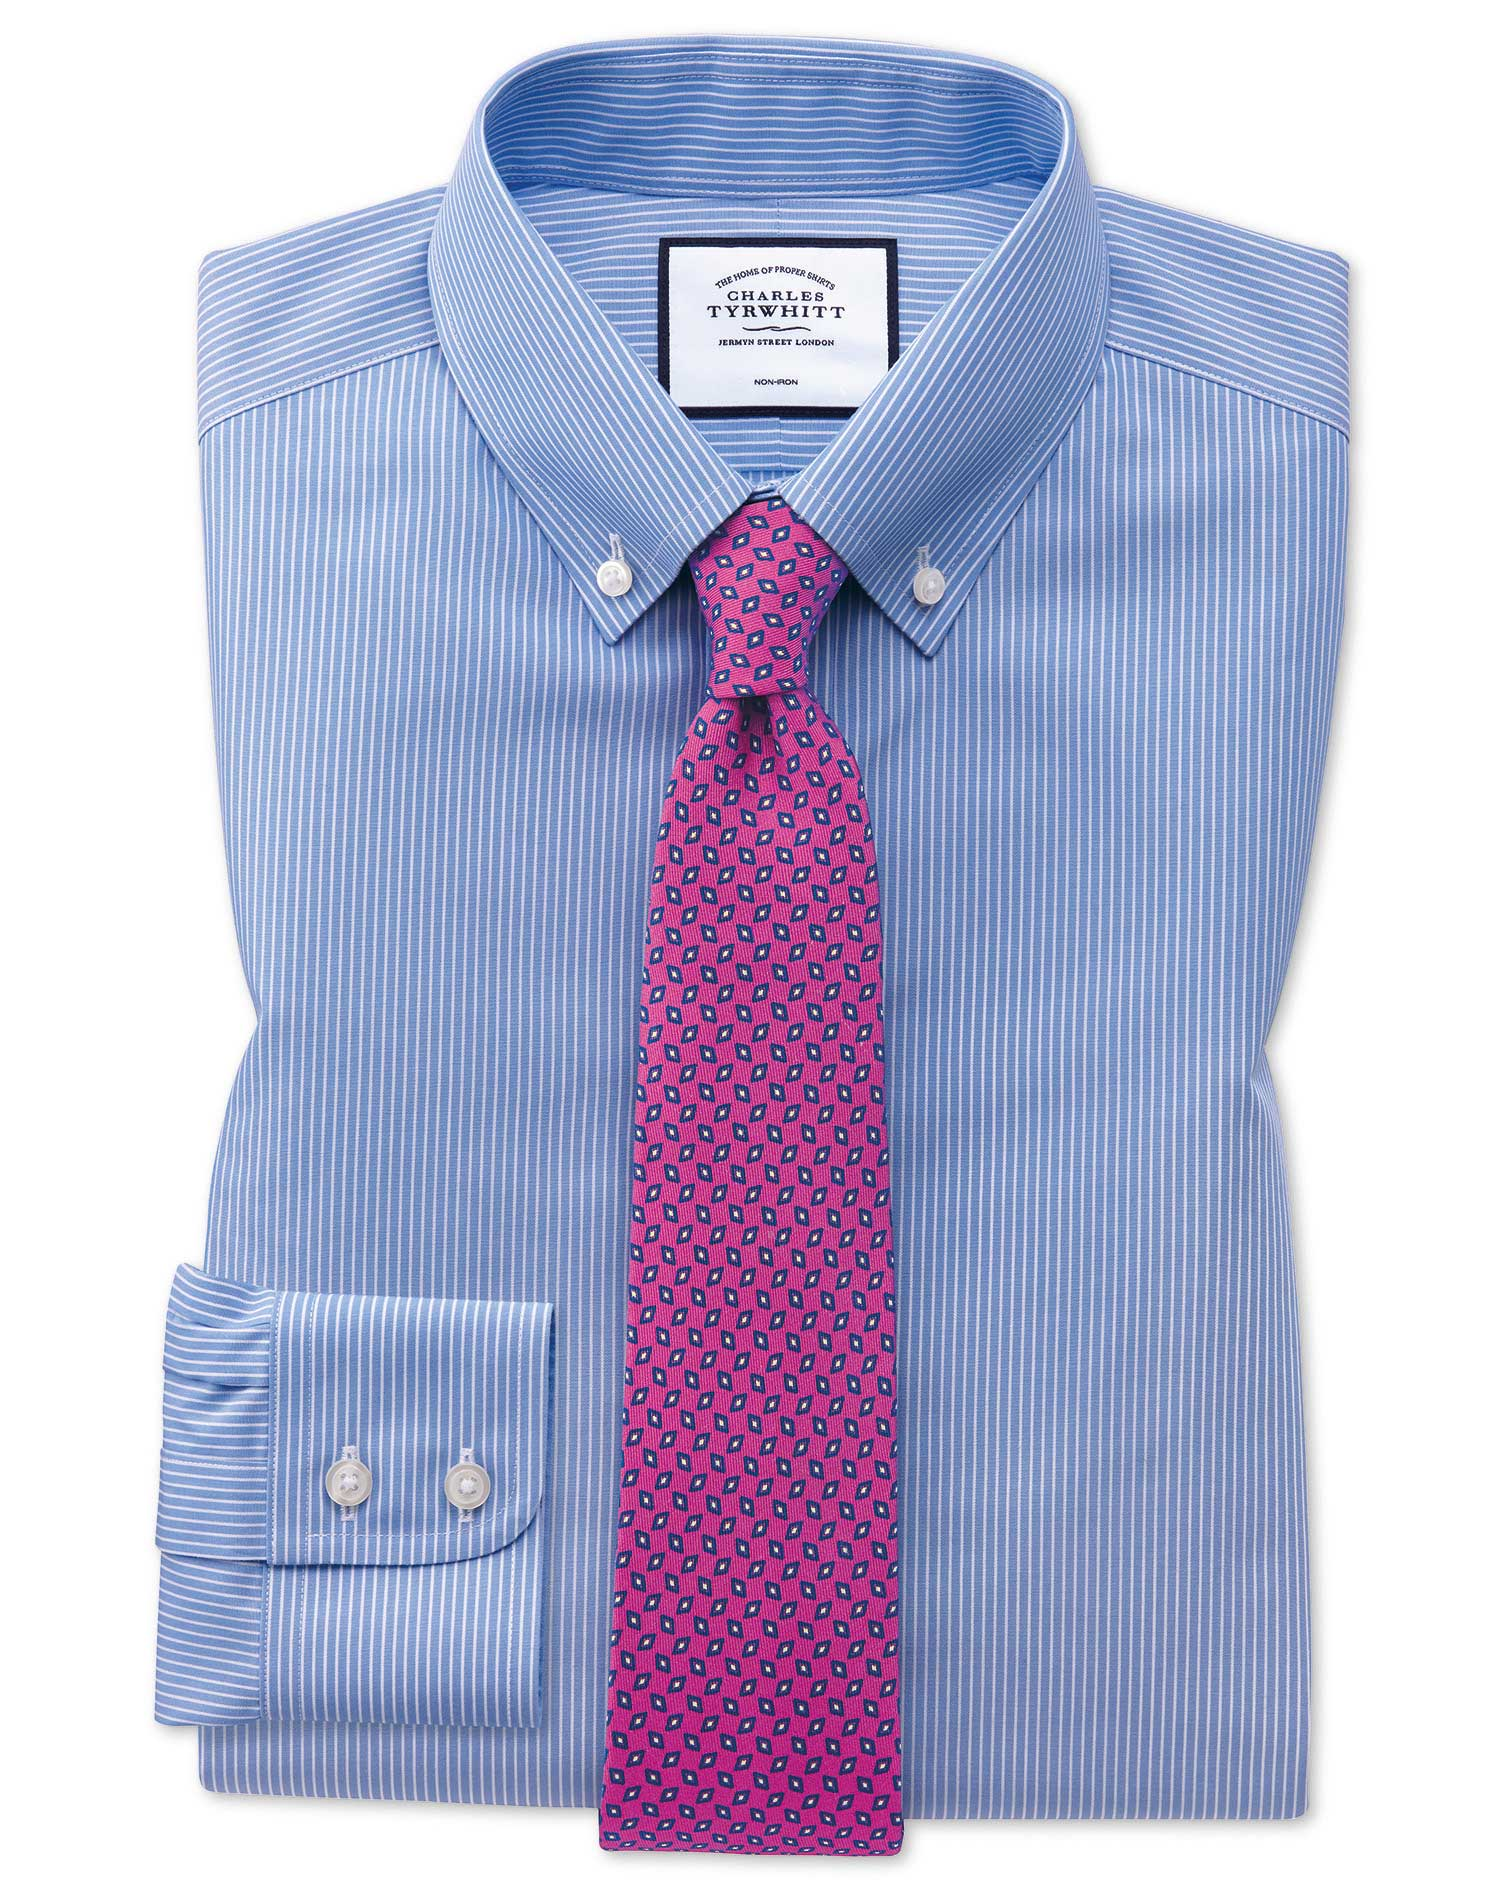 Extra Slim Fit Button-Down Non-Iron Blue and White Stripe Cotton Formal Shirt Single Cuff Size 16.5/